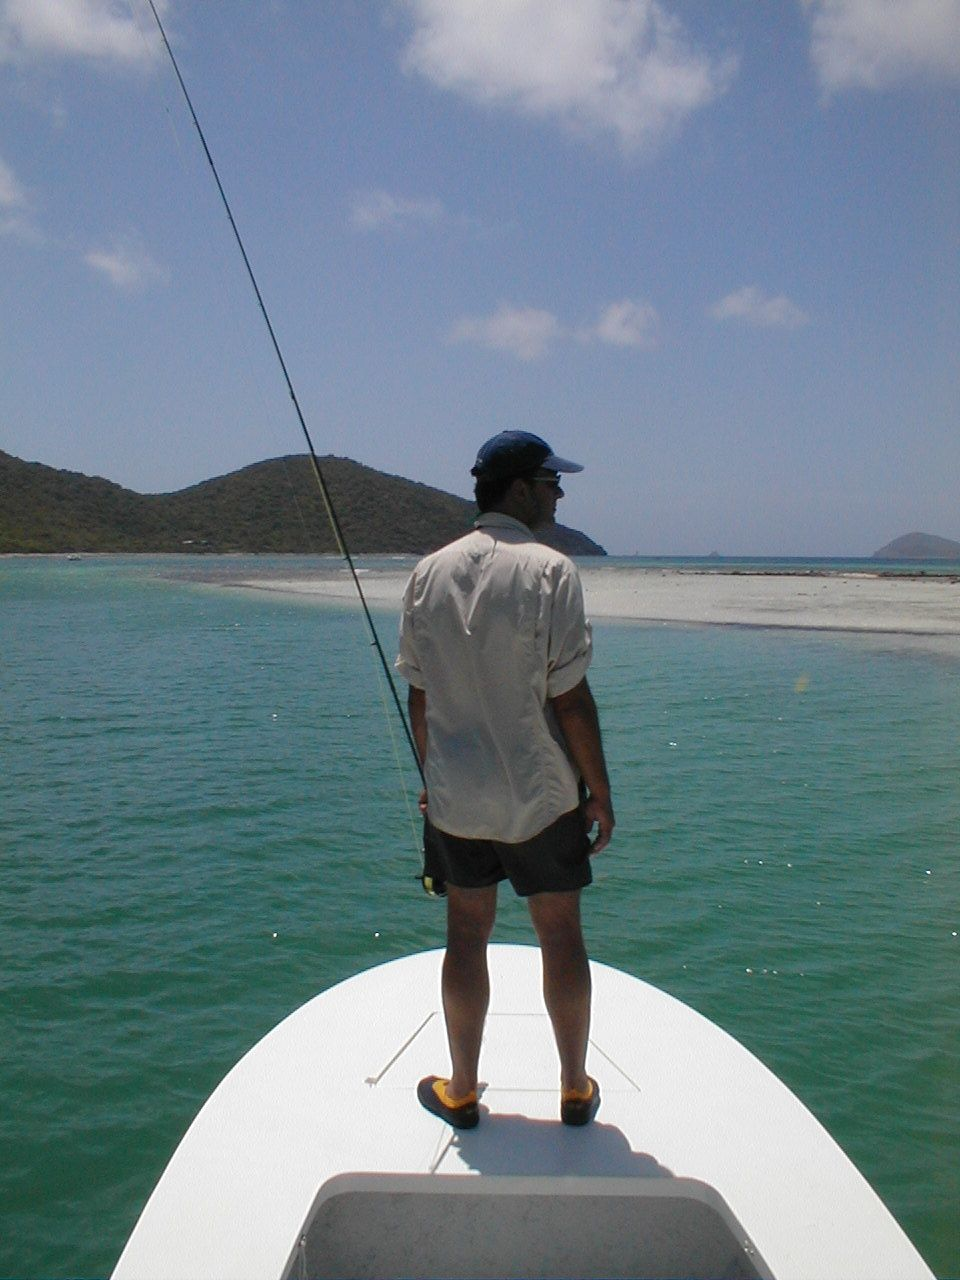 Caribbean Fly Fishing The Best Saltwater Fly Fishing In The Caribbean Saltwater Fishing Fly Fishing Fish